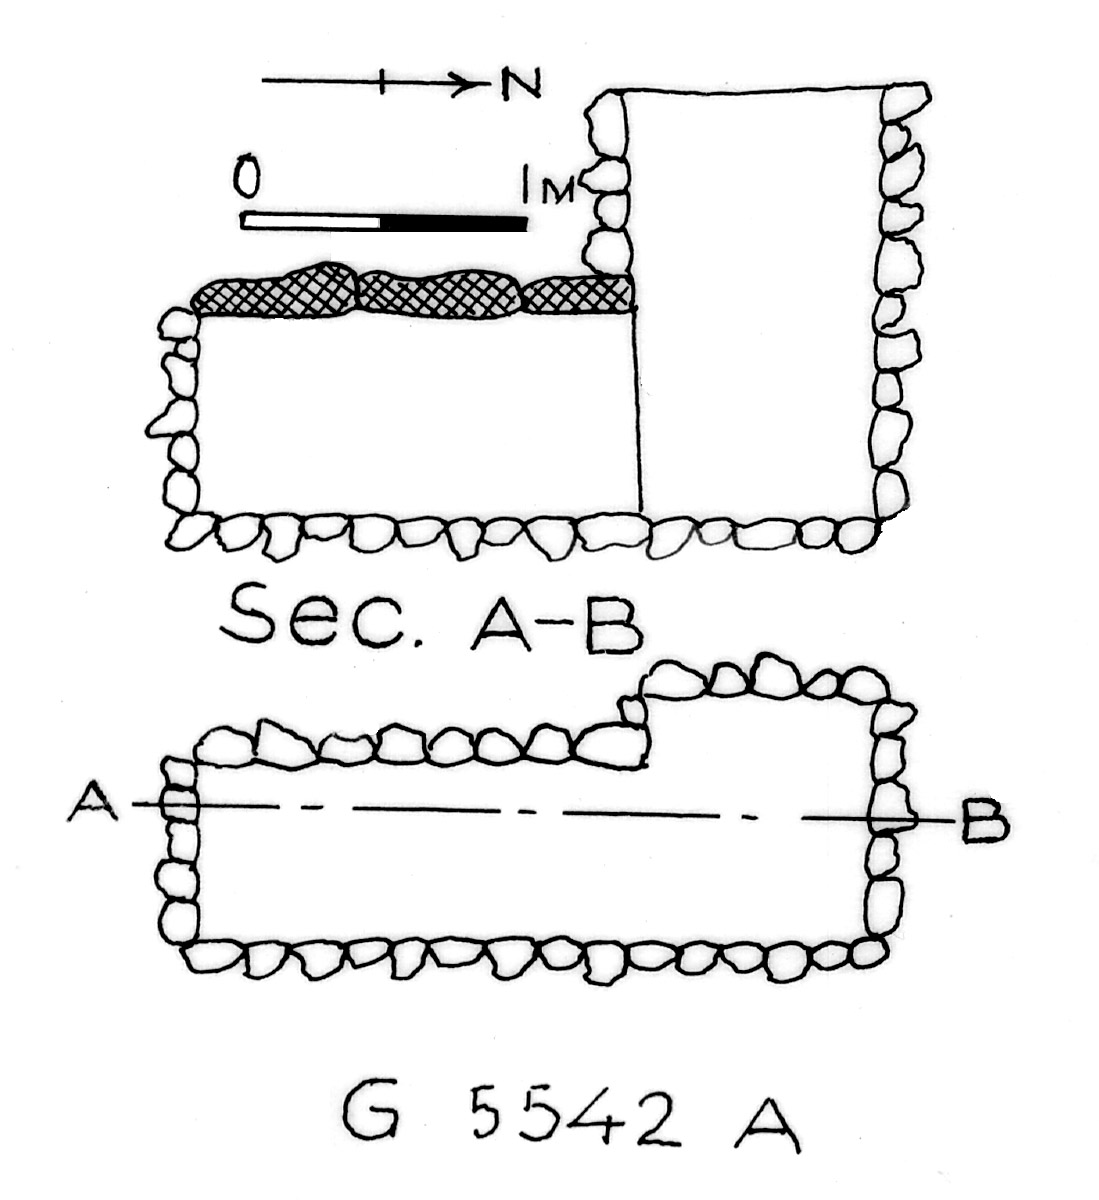 Maps and plans: G 2358 E = G 5542, Shaft A